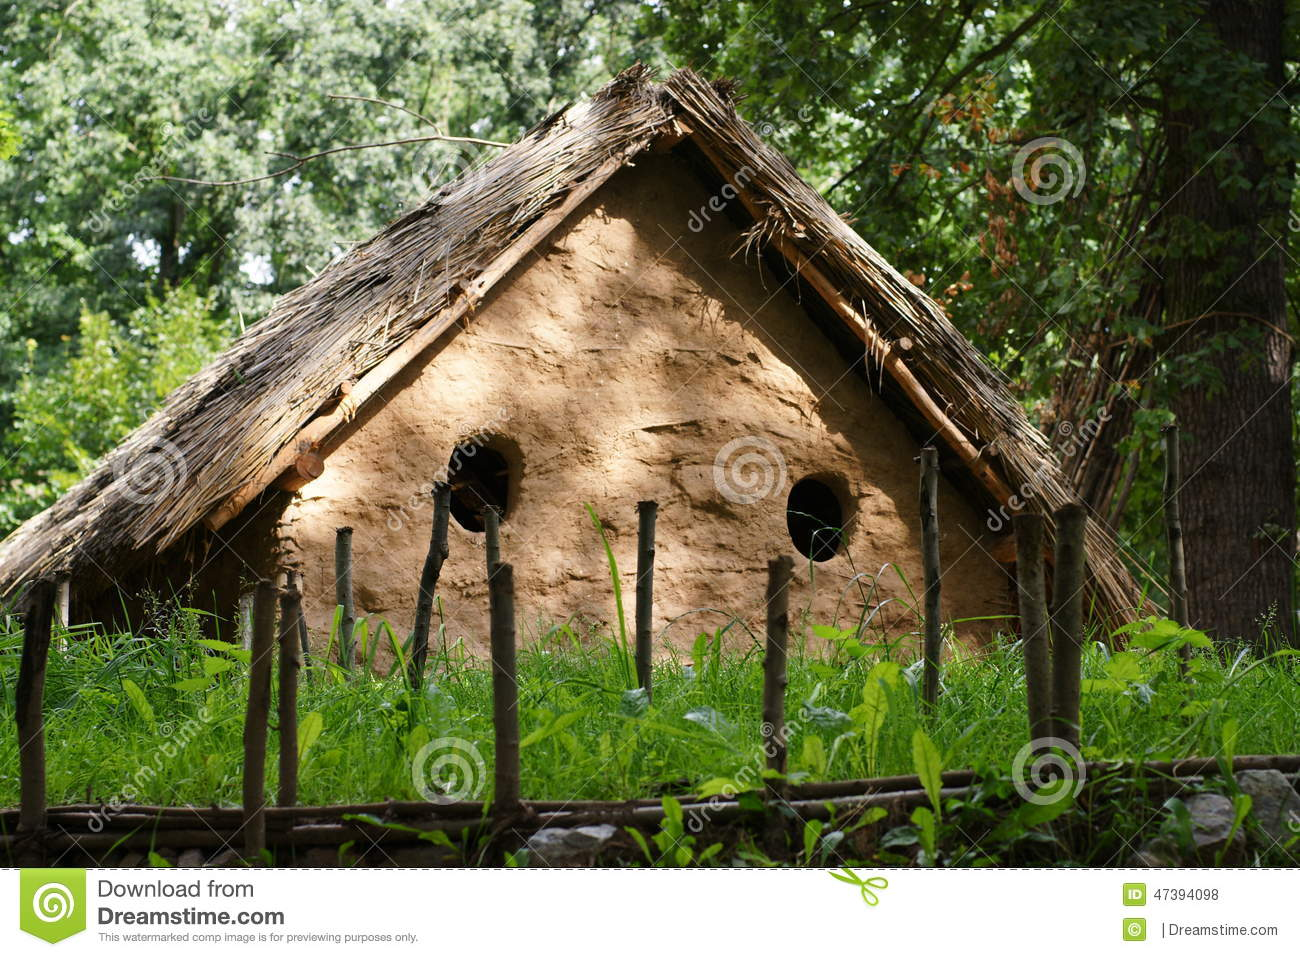 House in the distance stock photo. Image of forest, grass - 47394098 for Medieval Cottage In The Woods  177nar